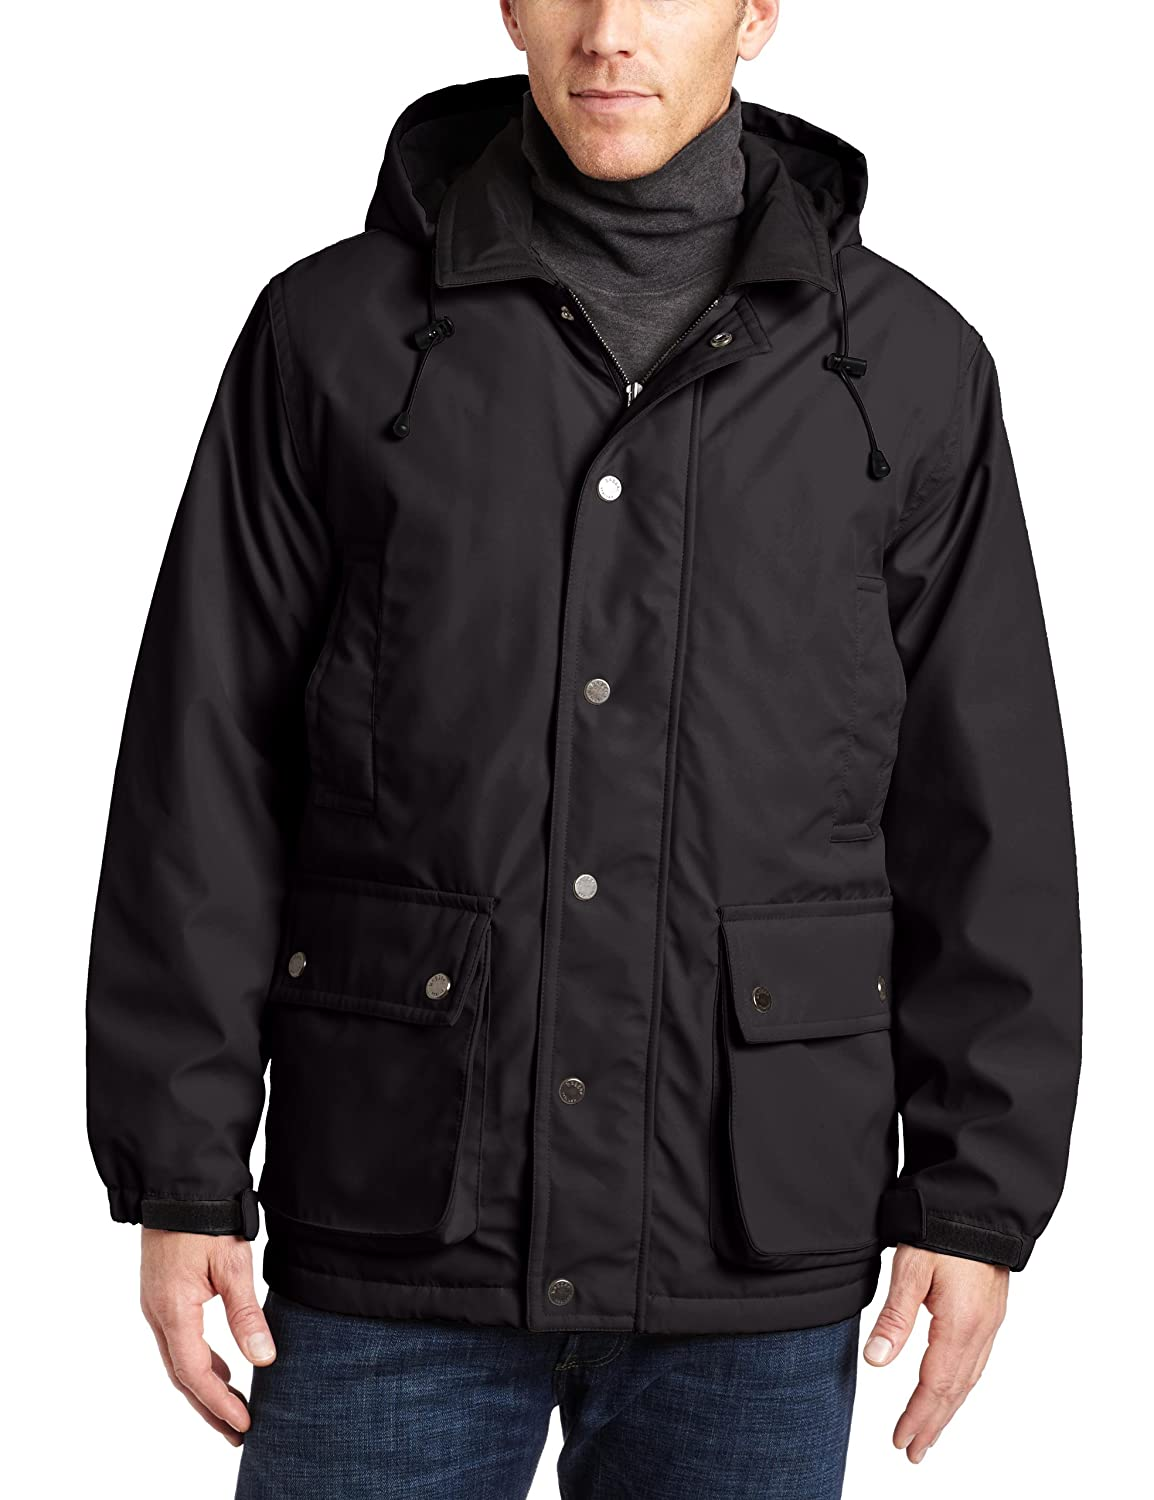 Clothing & Accessories : Up to 75% Off Outerwear